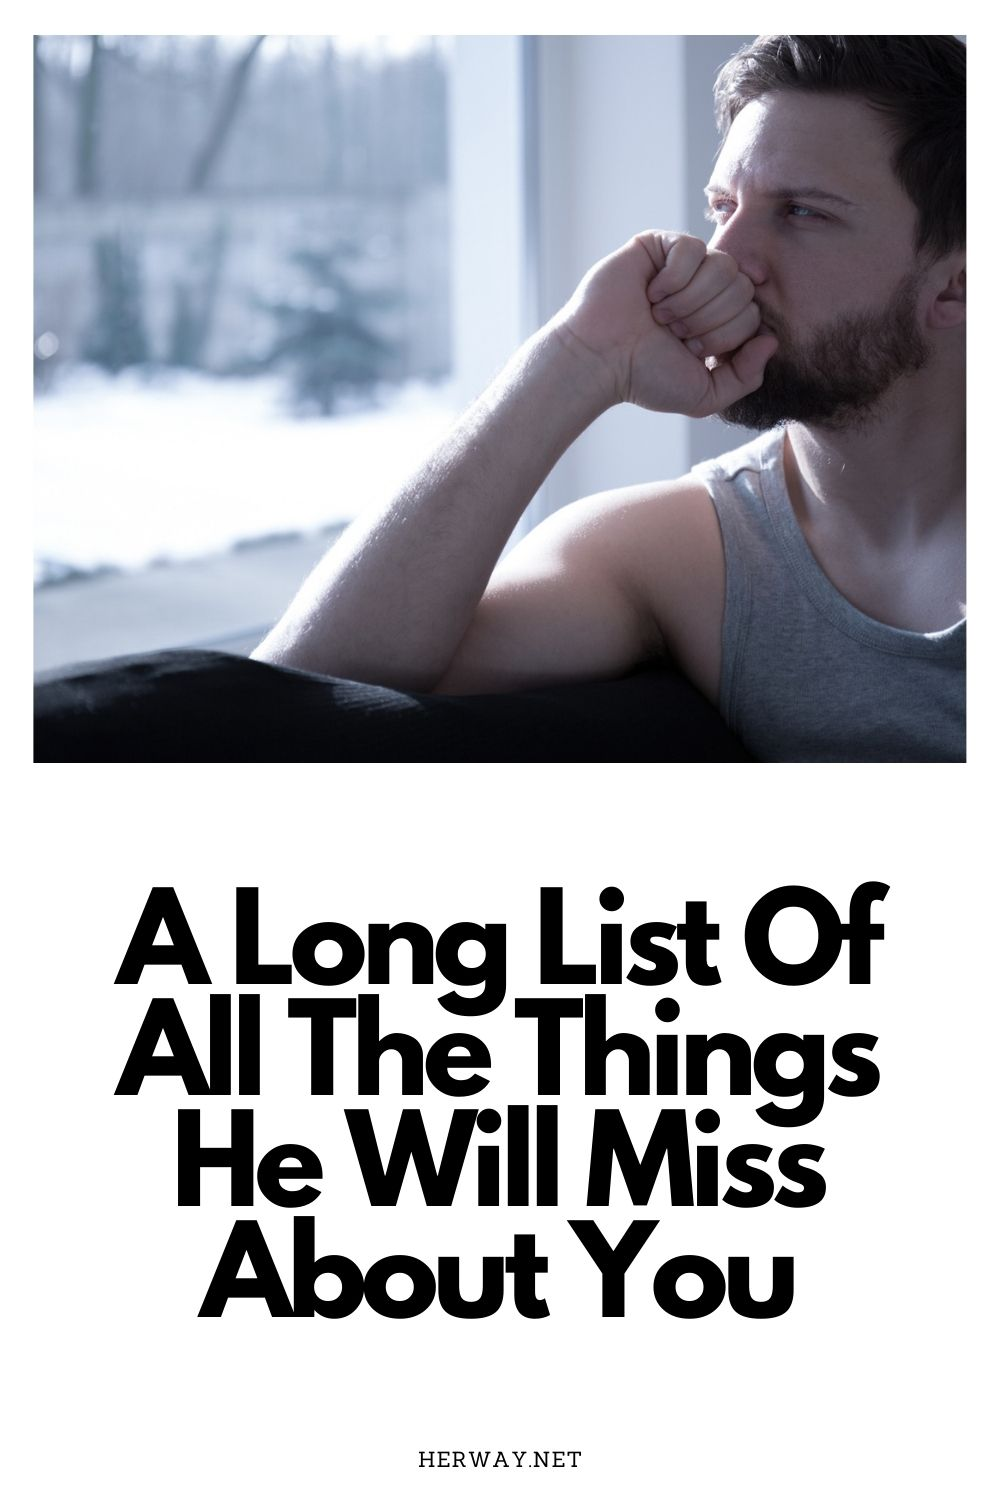 A Long List Of All The Things He Will Miss About You